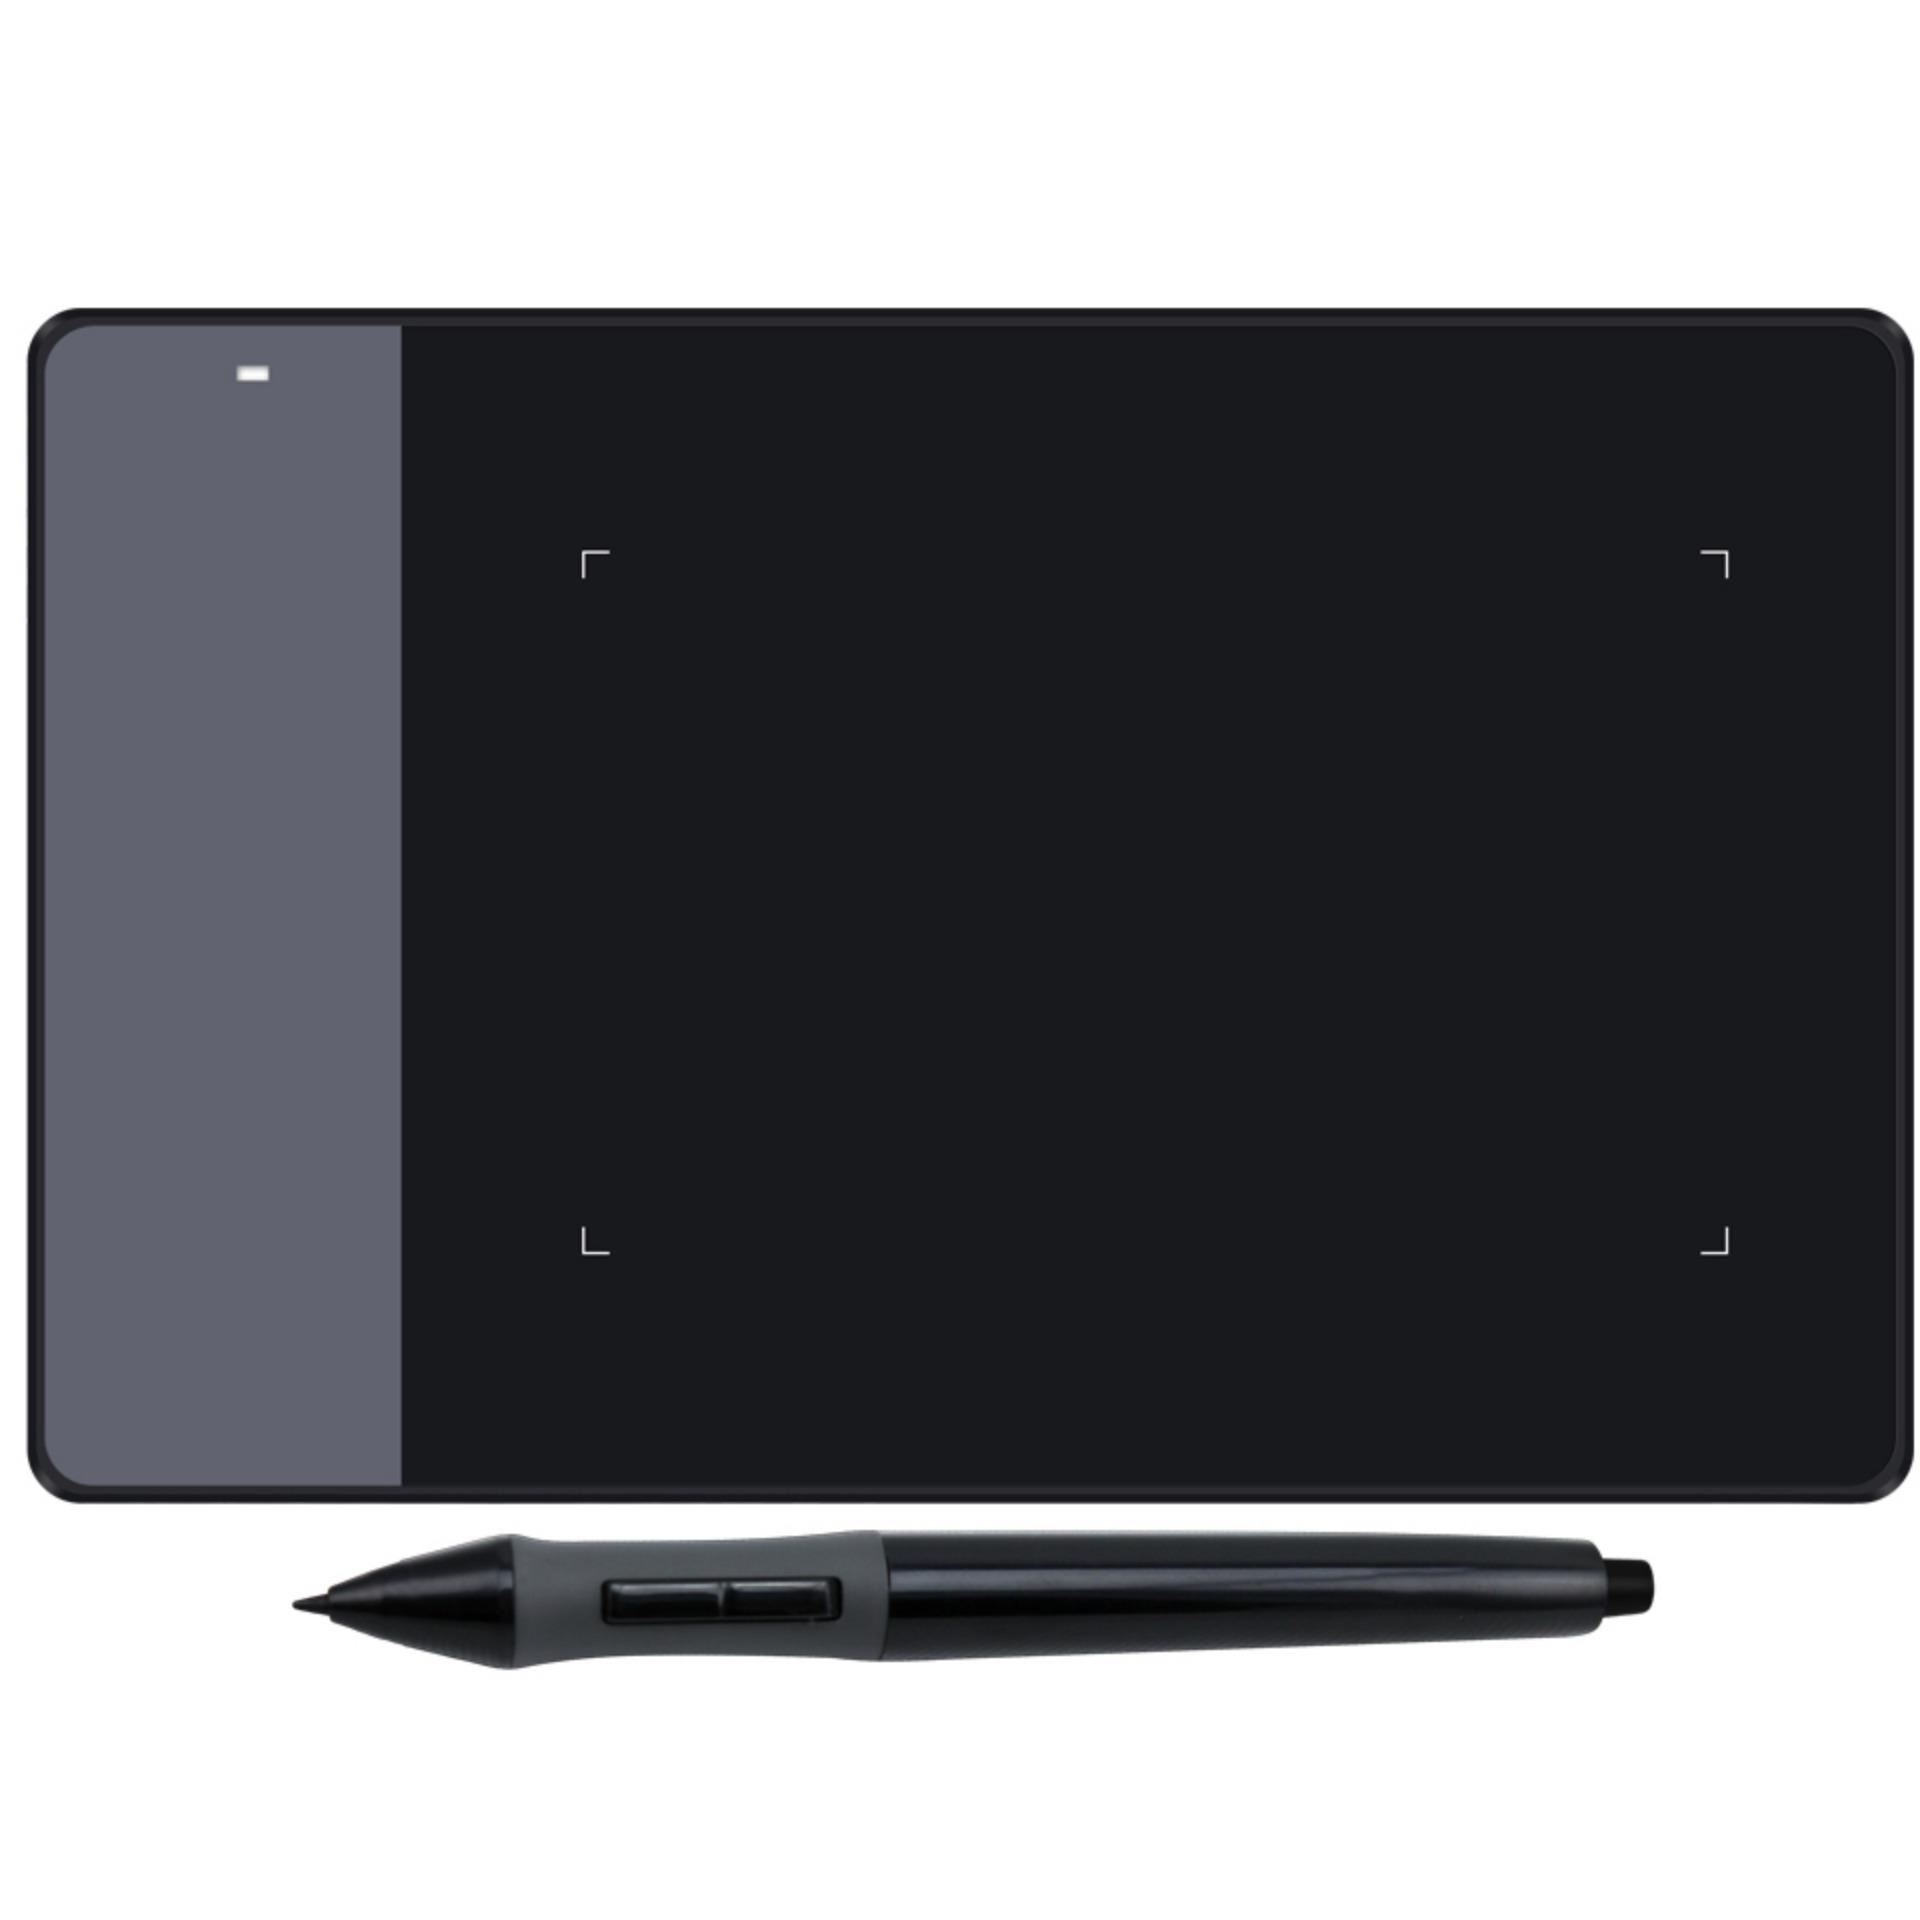 420 PROFESSIONAL PEN GRAPHIC TABLET FOR OSU 4 INCHES